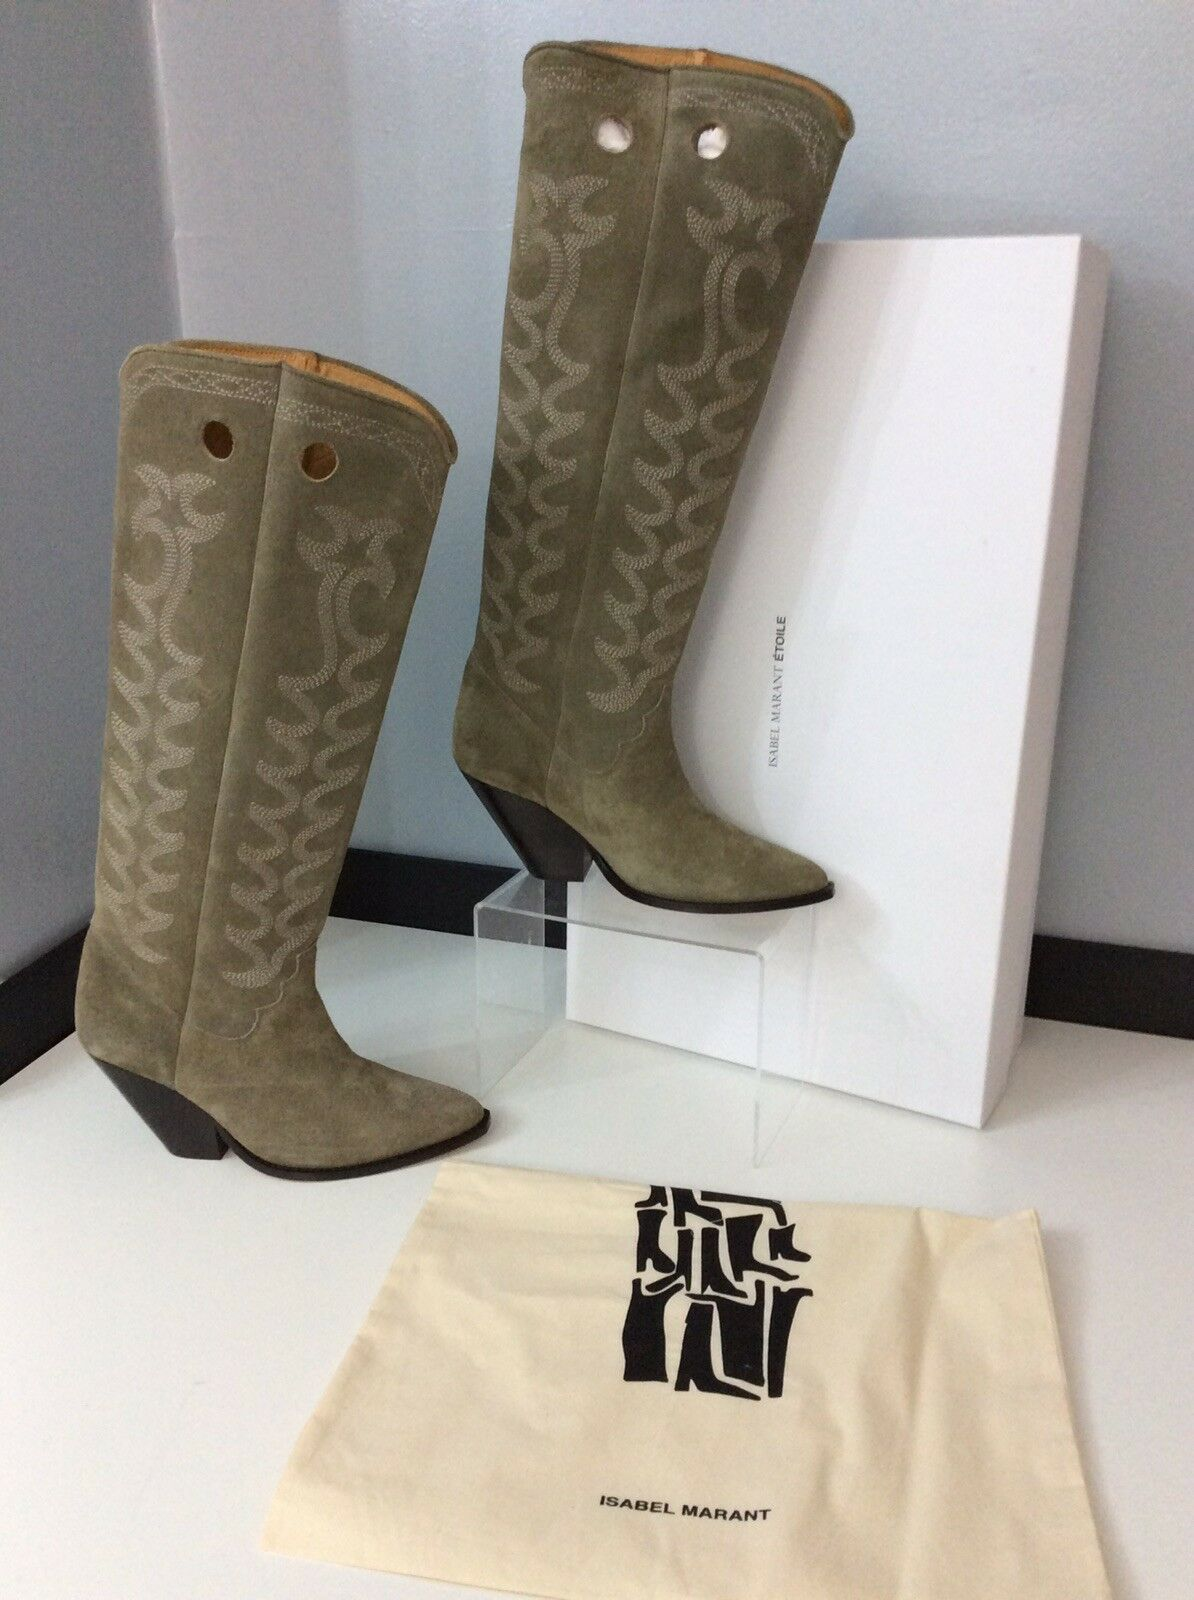 Isabel Marant NEW Deytta Khaki Suede Leather Boots Size 38 Uk 5 BNIB